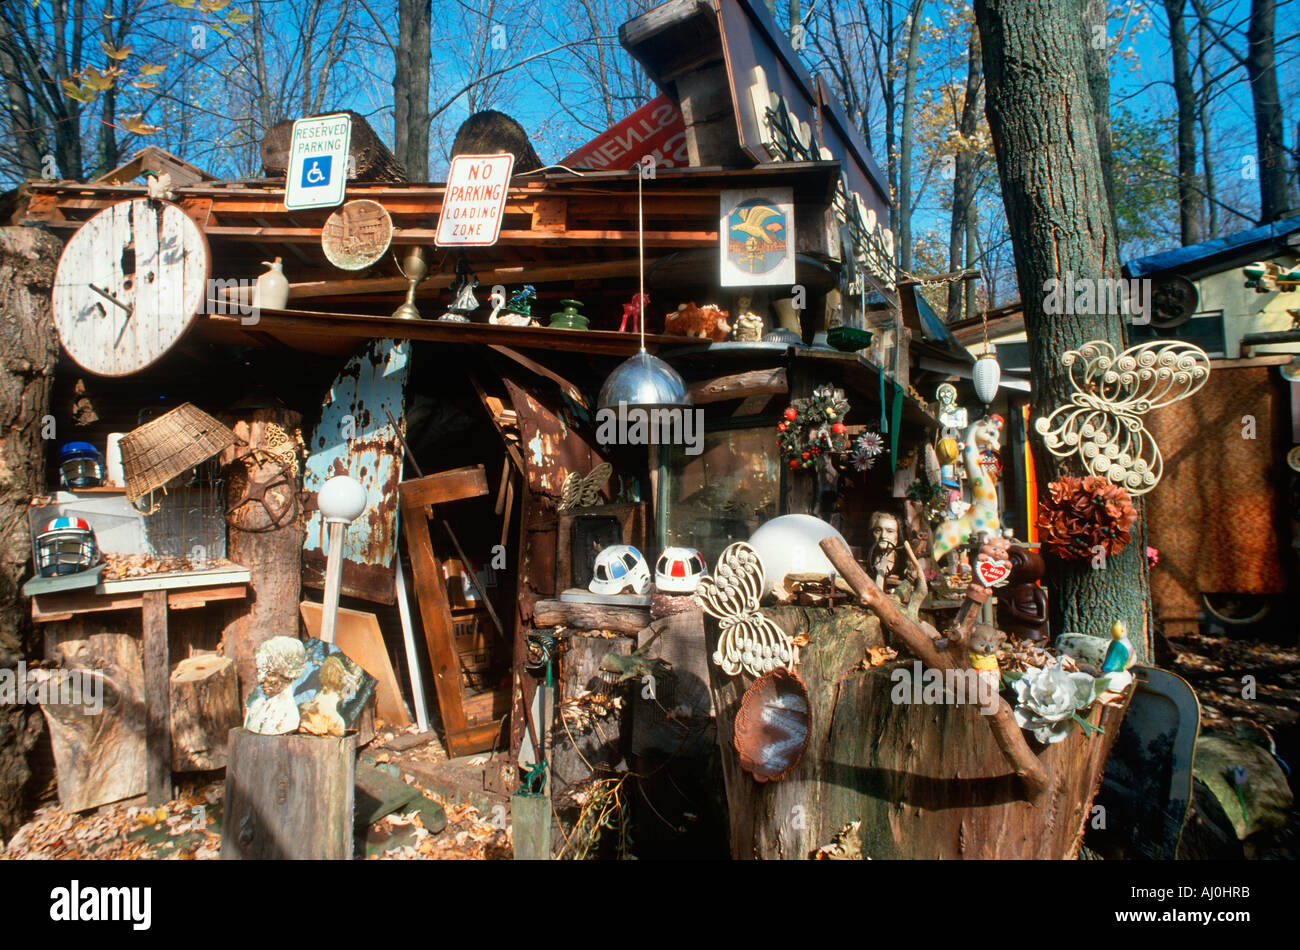 Collectibles and junk in a back yard Highway 90 NY - Stock Image